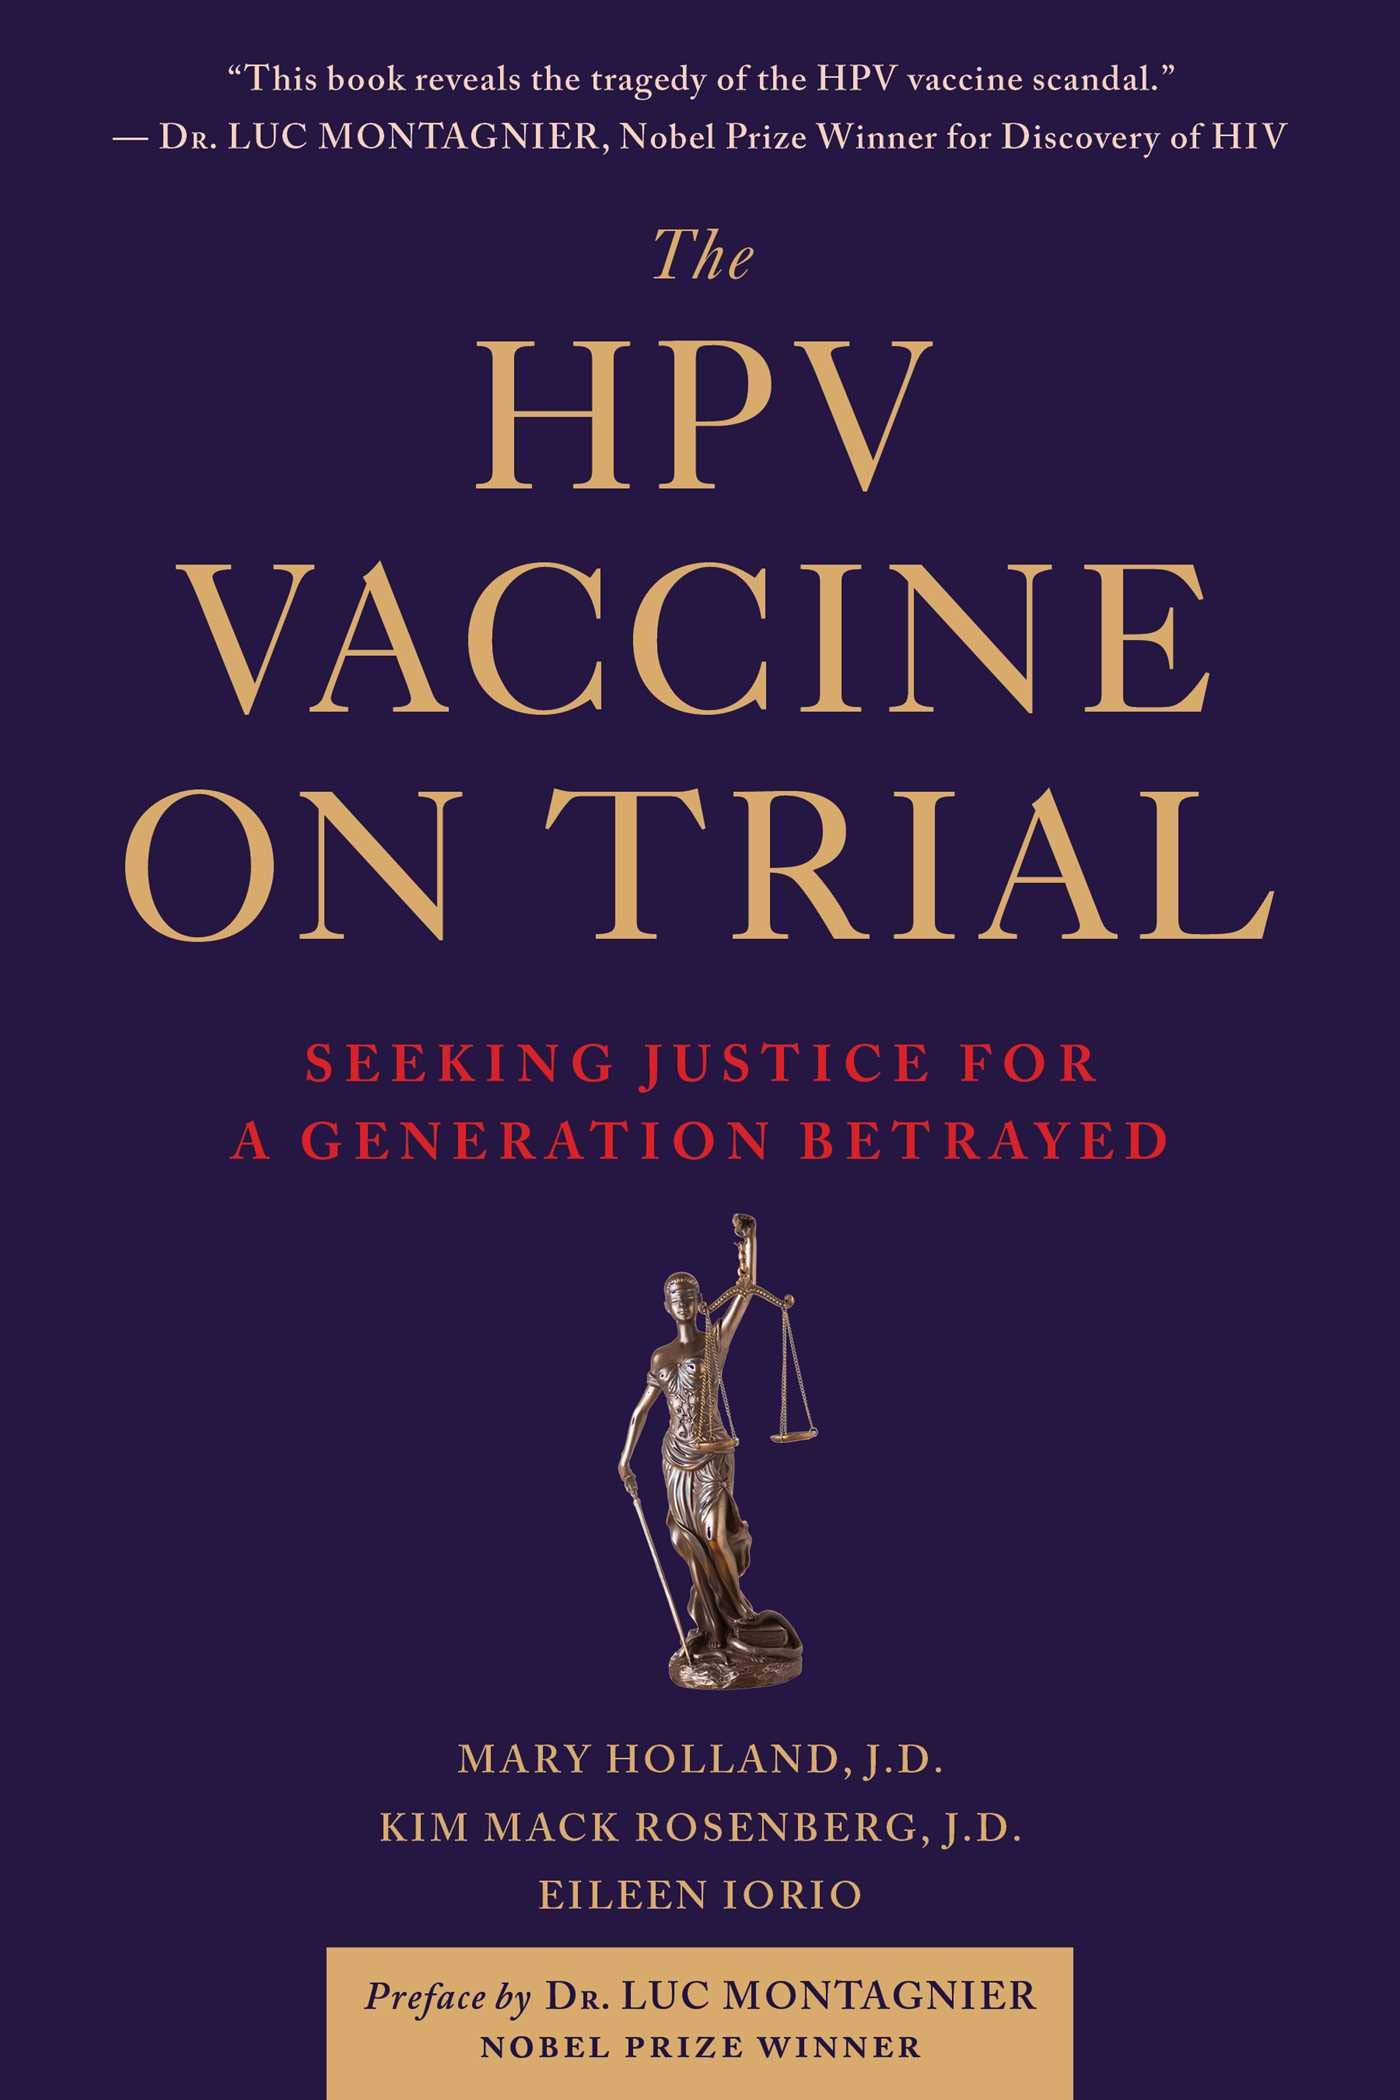 hpv vaccine side effects reviews